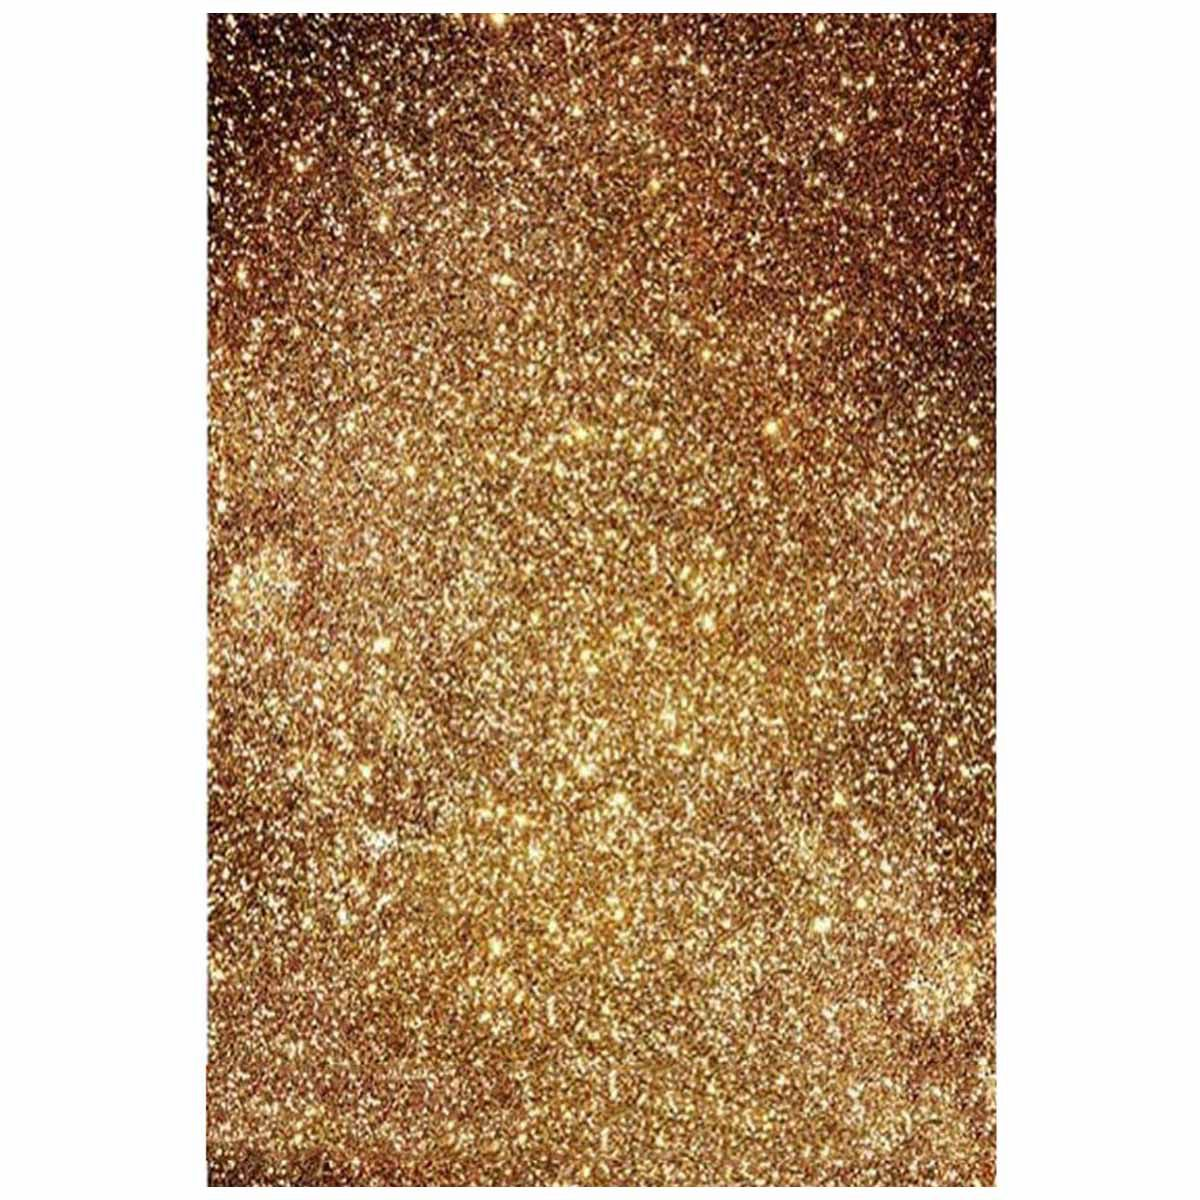 3X5ft Golden Glitters Vinyl Photography Background Backdrop Photo Studio Props paw patrol photo background photography backdrop quality vinyl